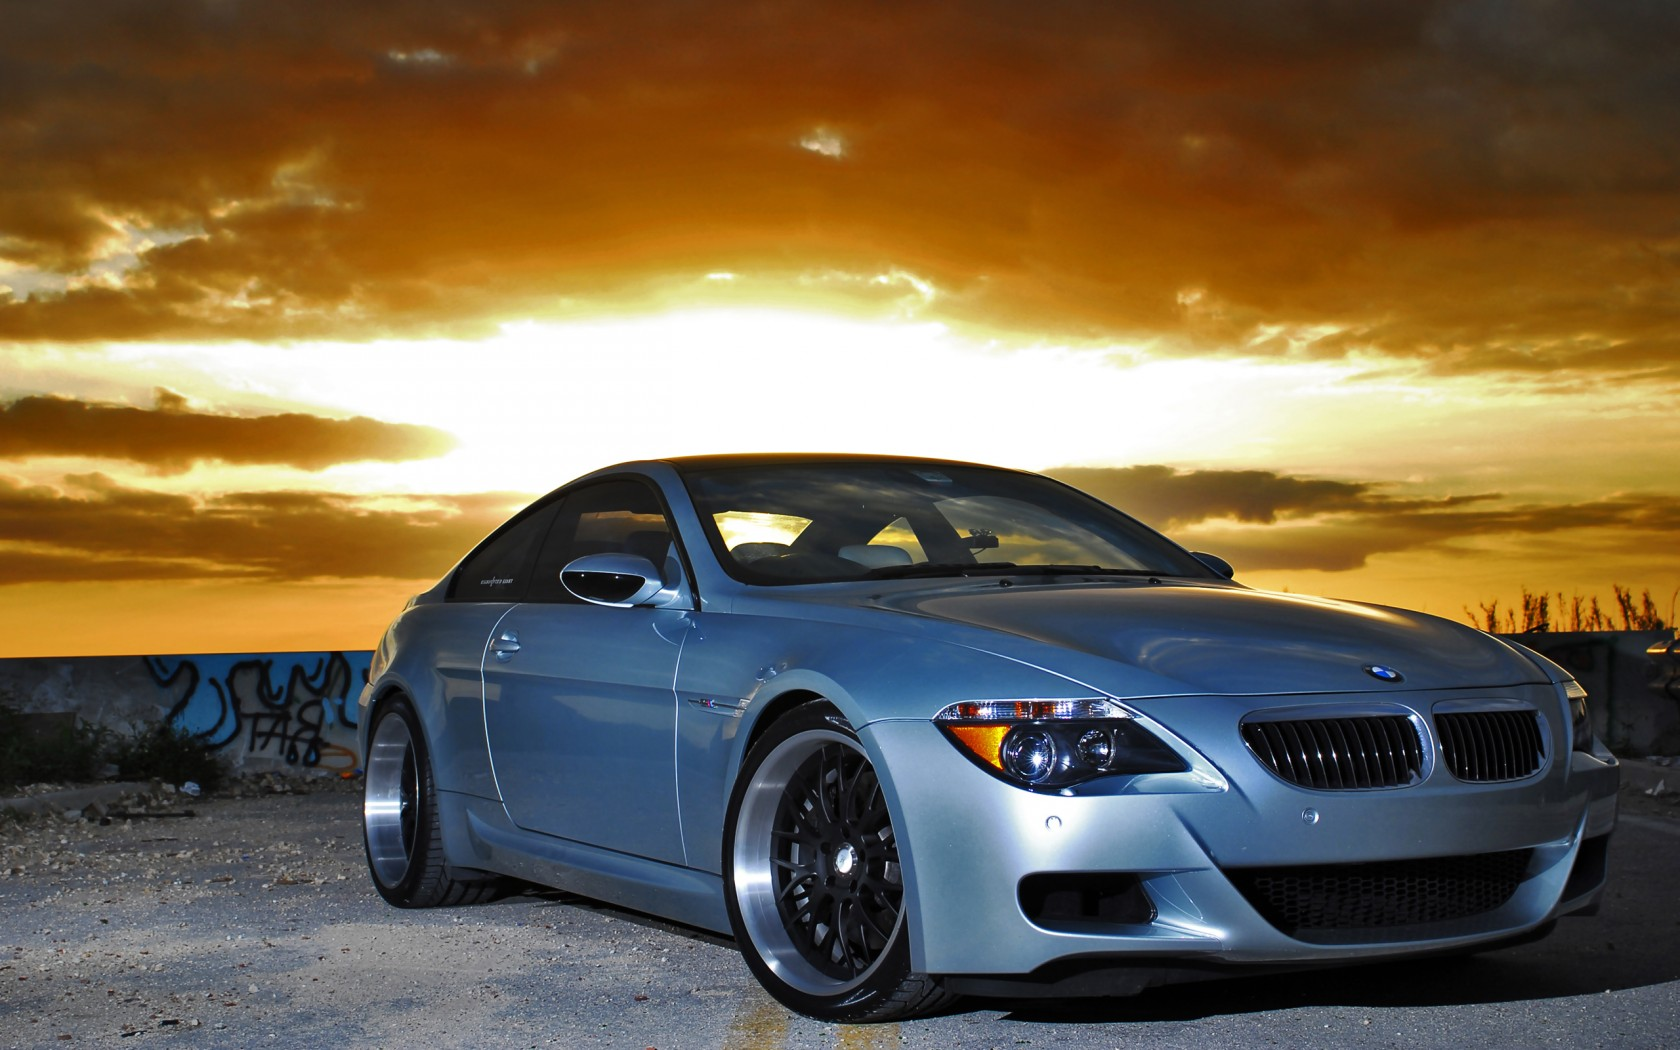 Bmw M6 Forged Wheels Wallpaper Hd Car Wallpapers Id 2695